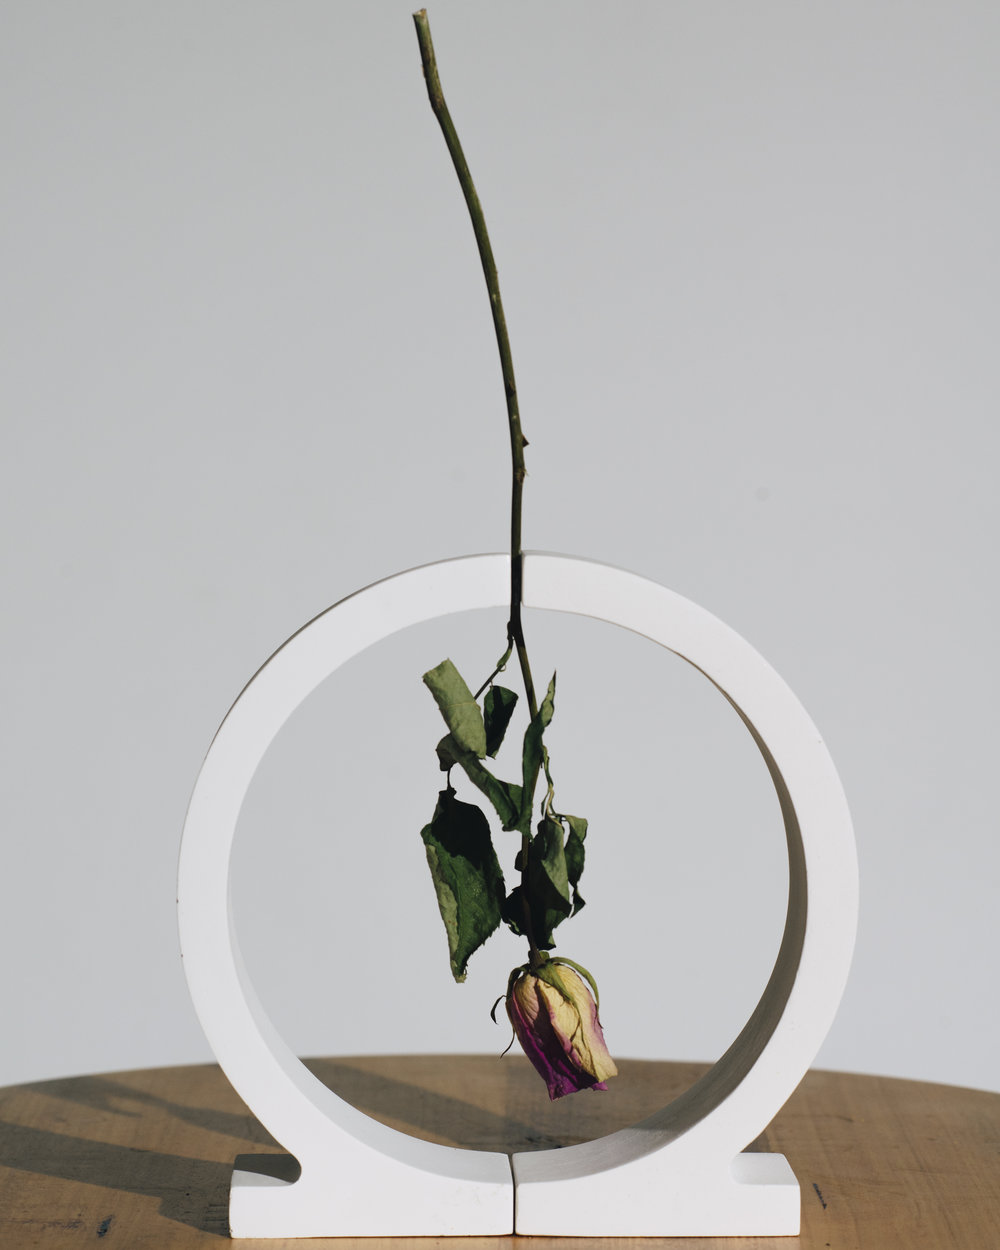 A Vase for Dead Flowers